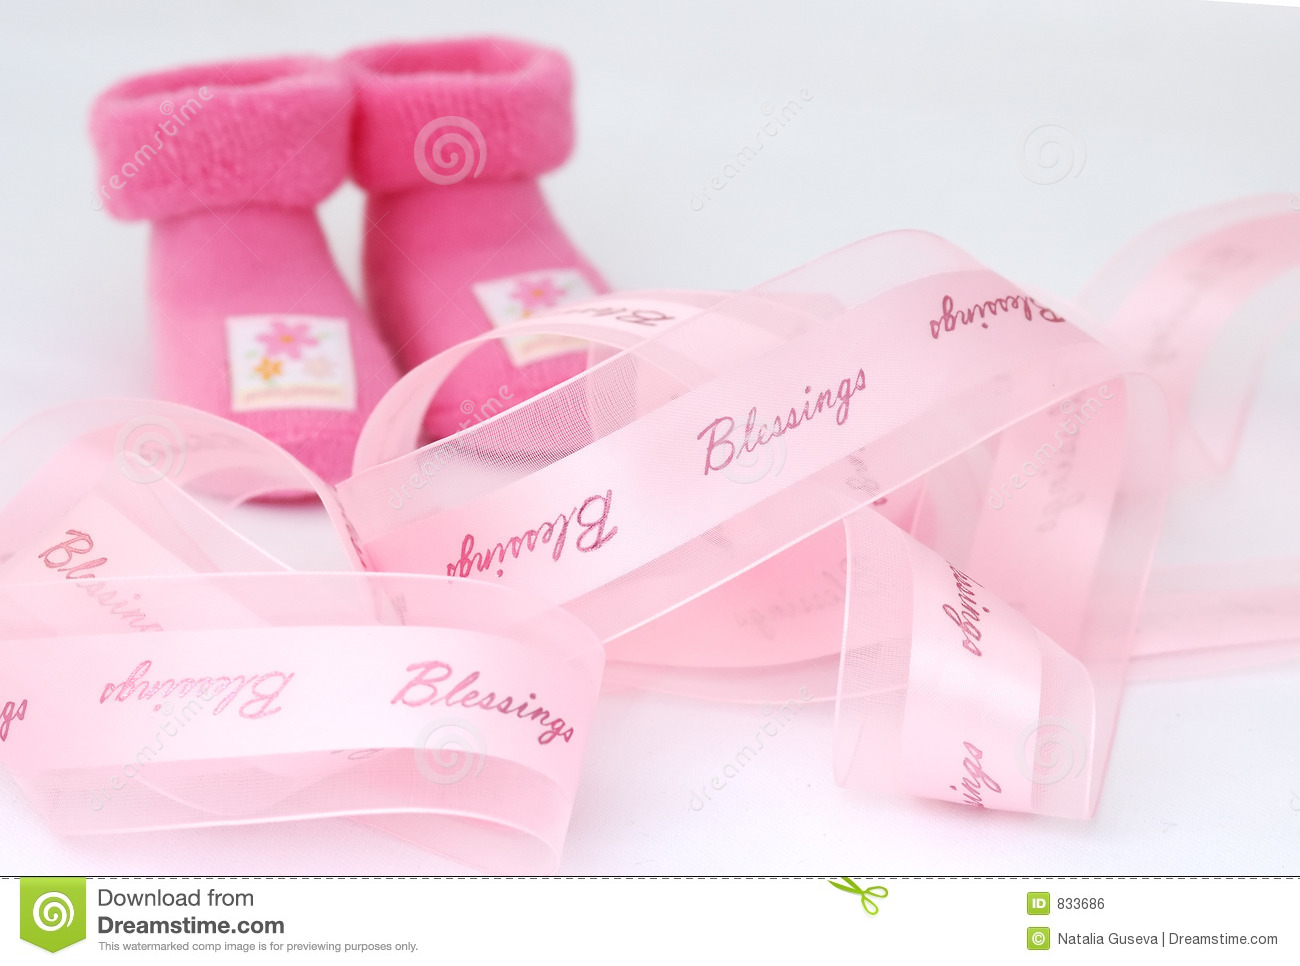 Pink Ribbon With Blessings Print And Two Pink Socks At The Background